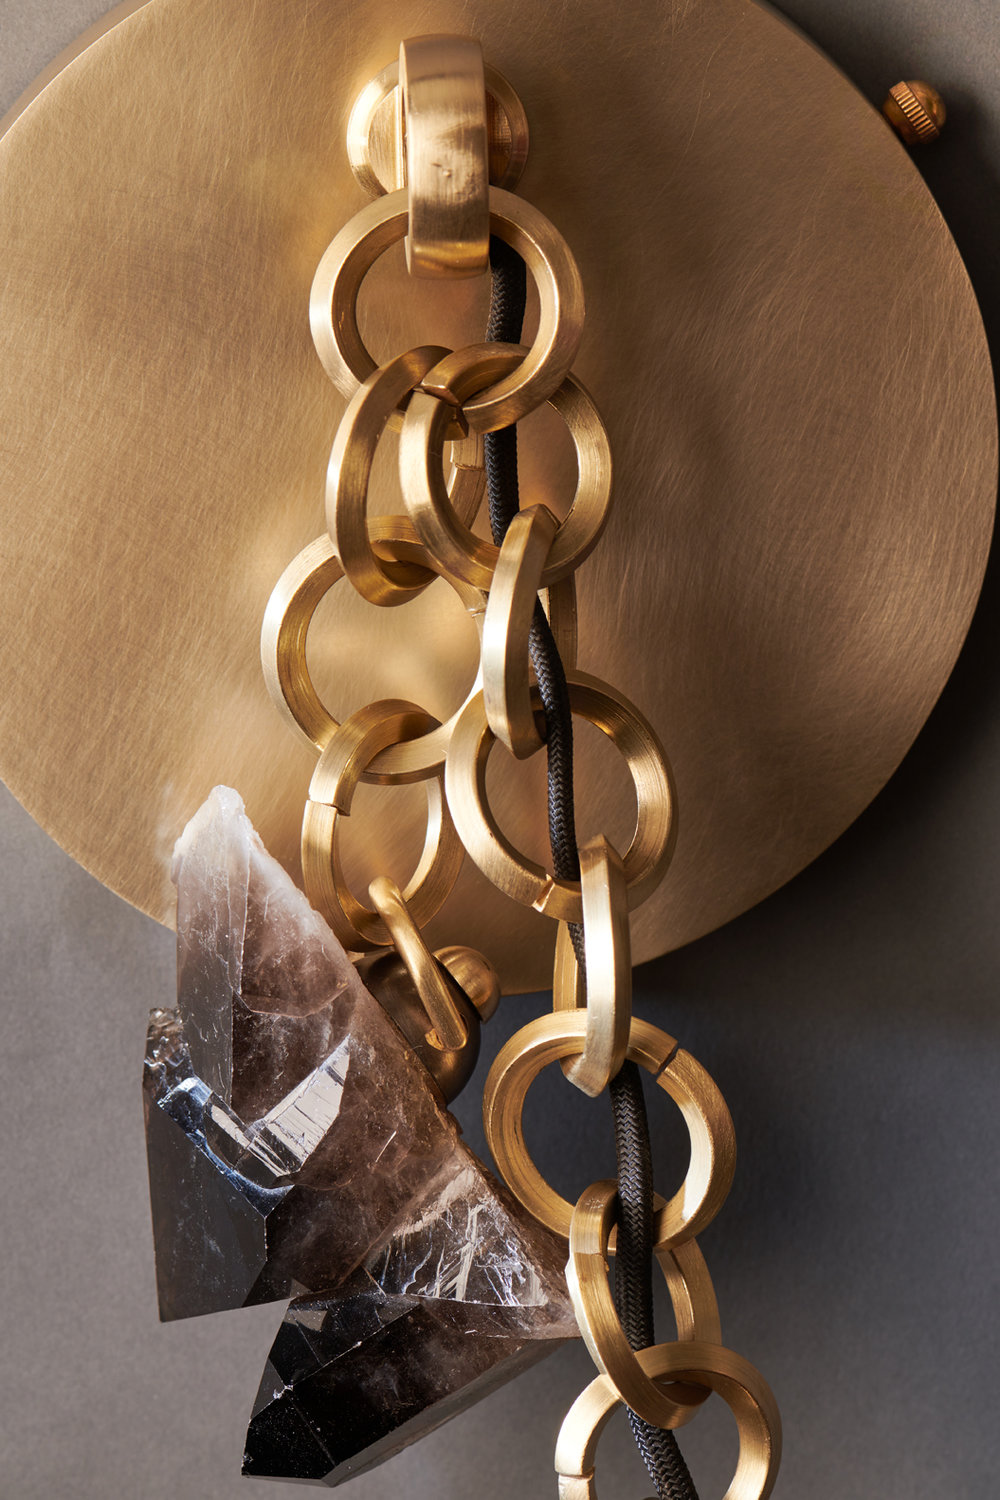 chain and ball wall sconce detail s.jpg